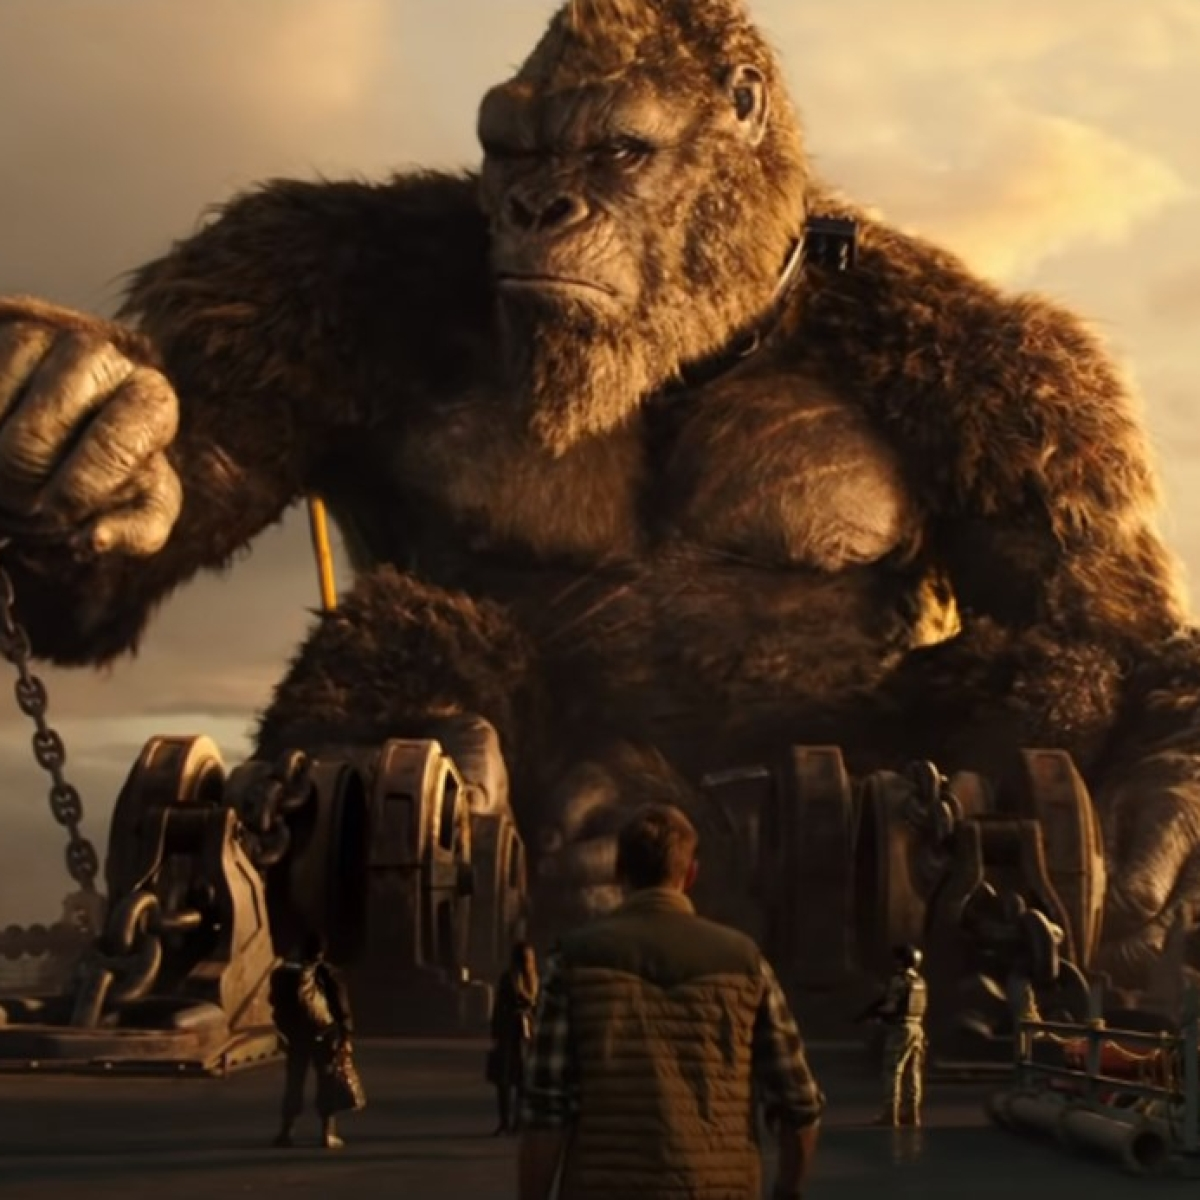 Much-awaited action drama 'Godzilla vs. Kong' to release on March 31, 2021